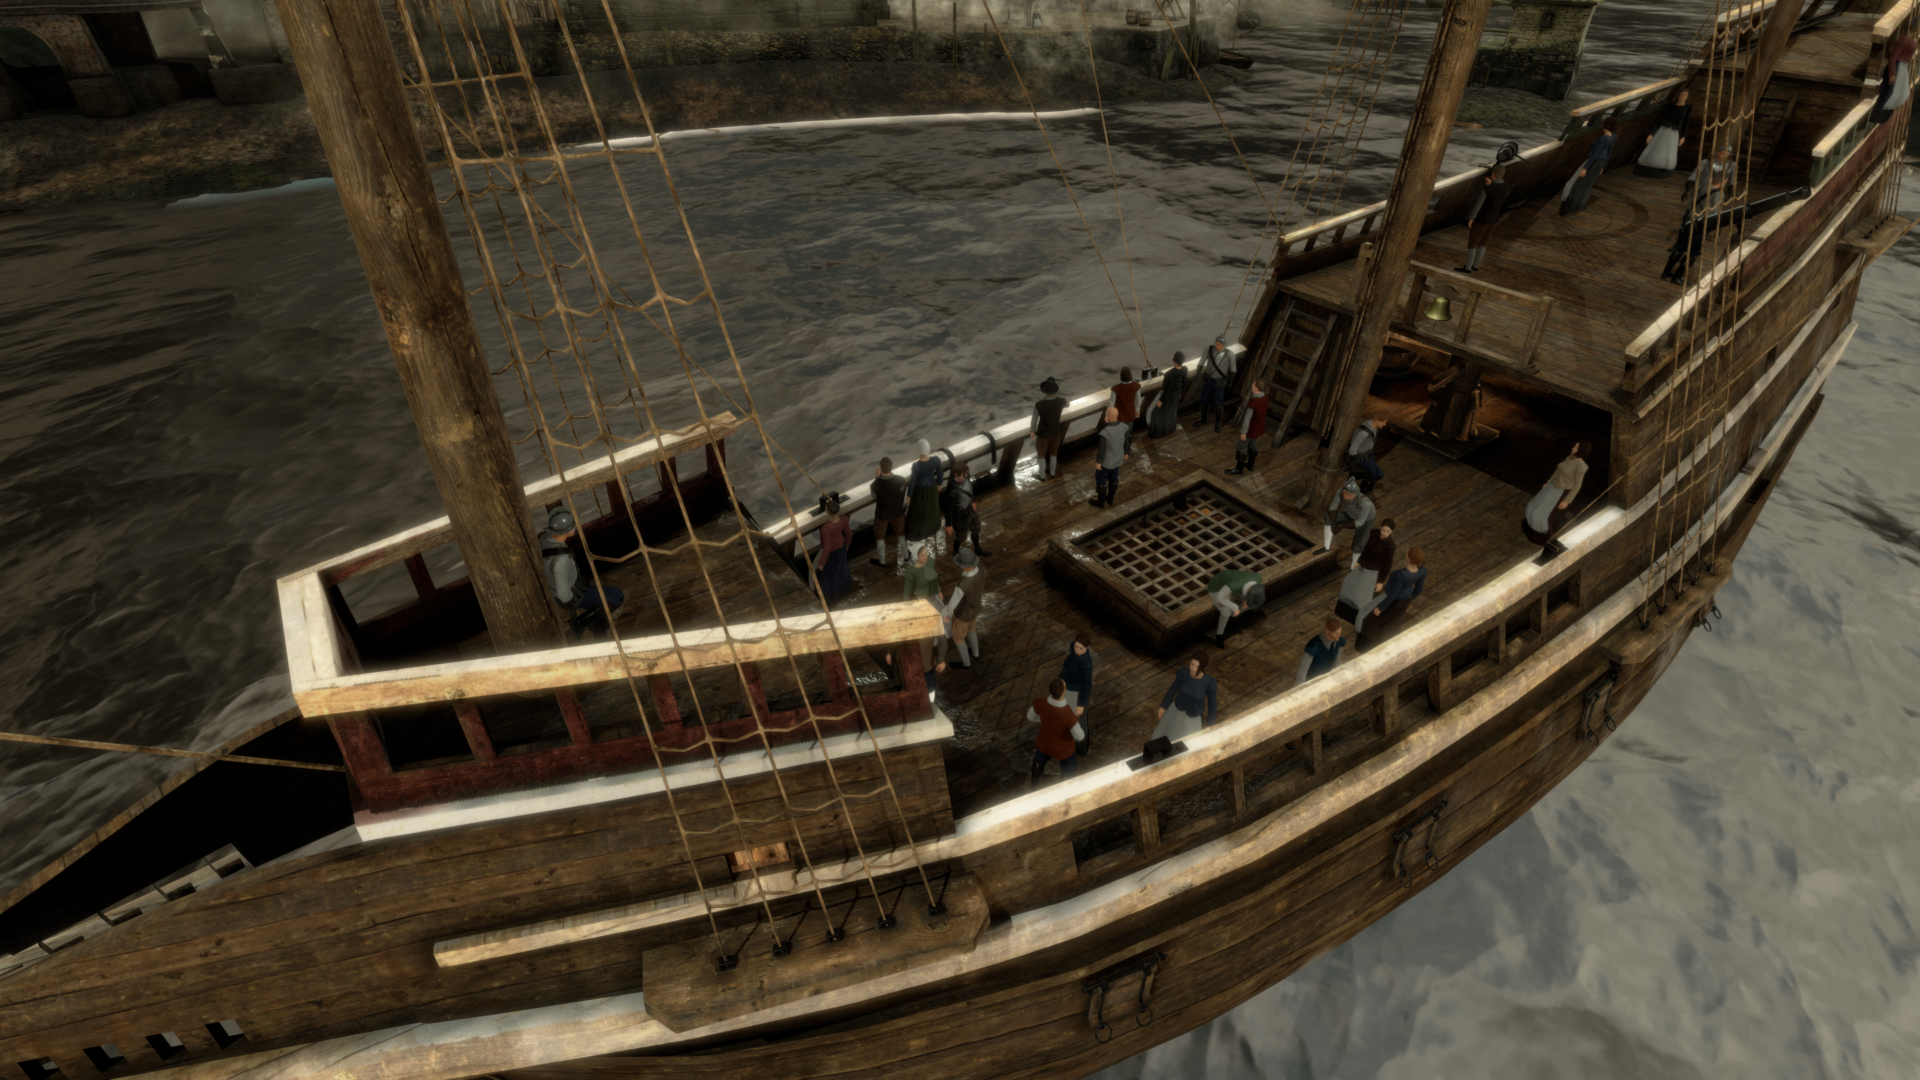 Virtual 1620s: Bringing history to life